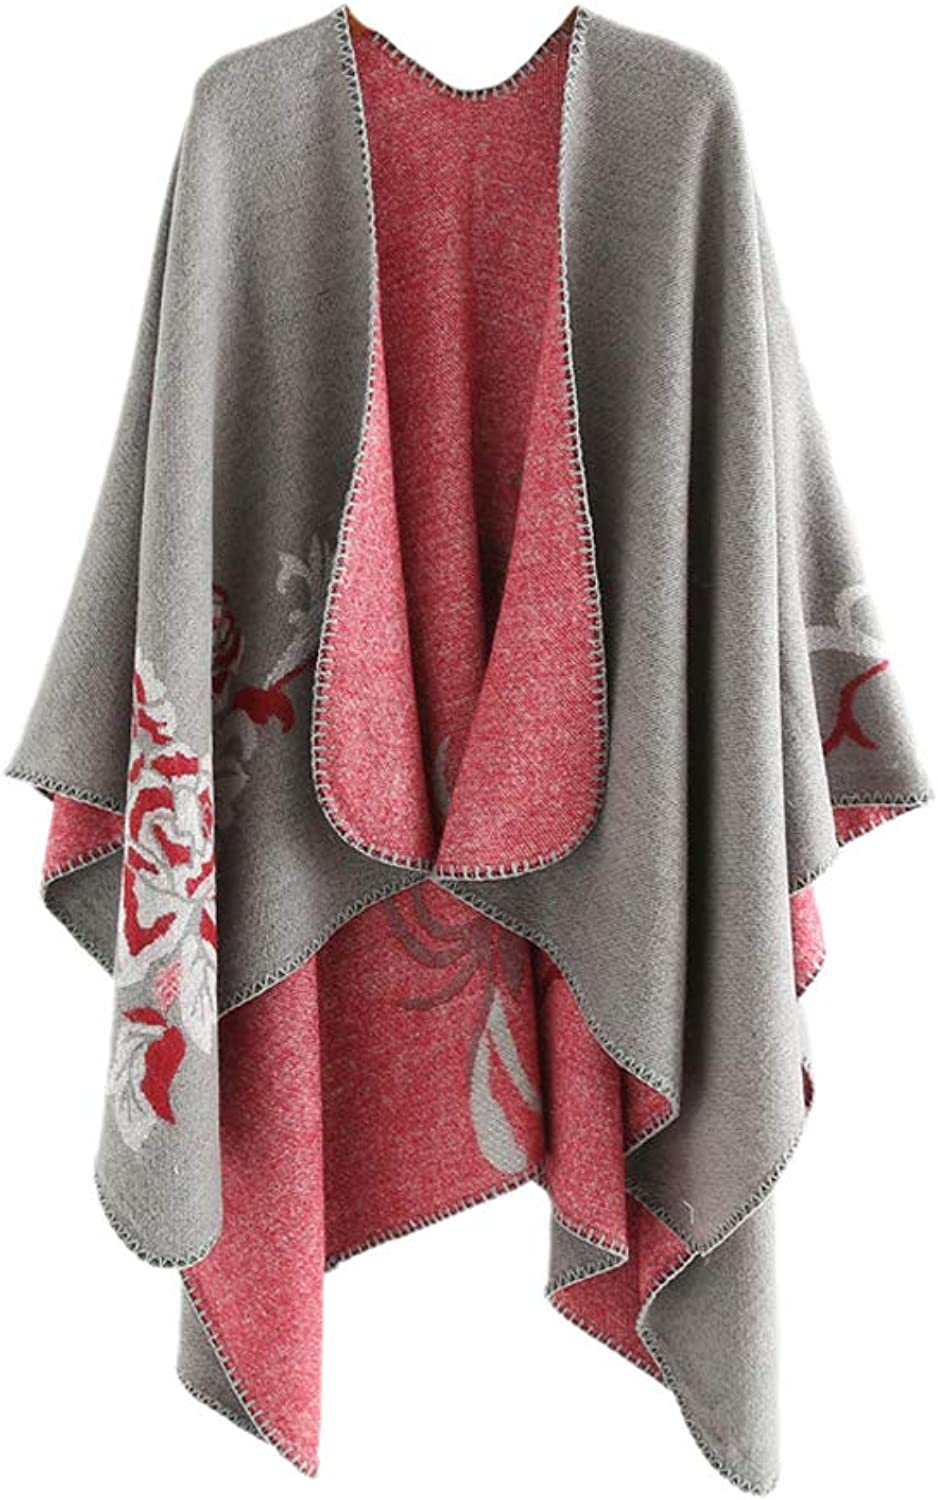 ACVIP Women's Manmade Fleece Pull On Cardigan Style Poncho Cape (grey)